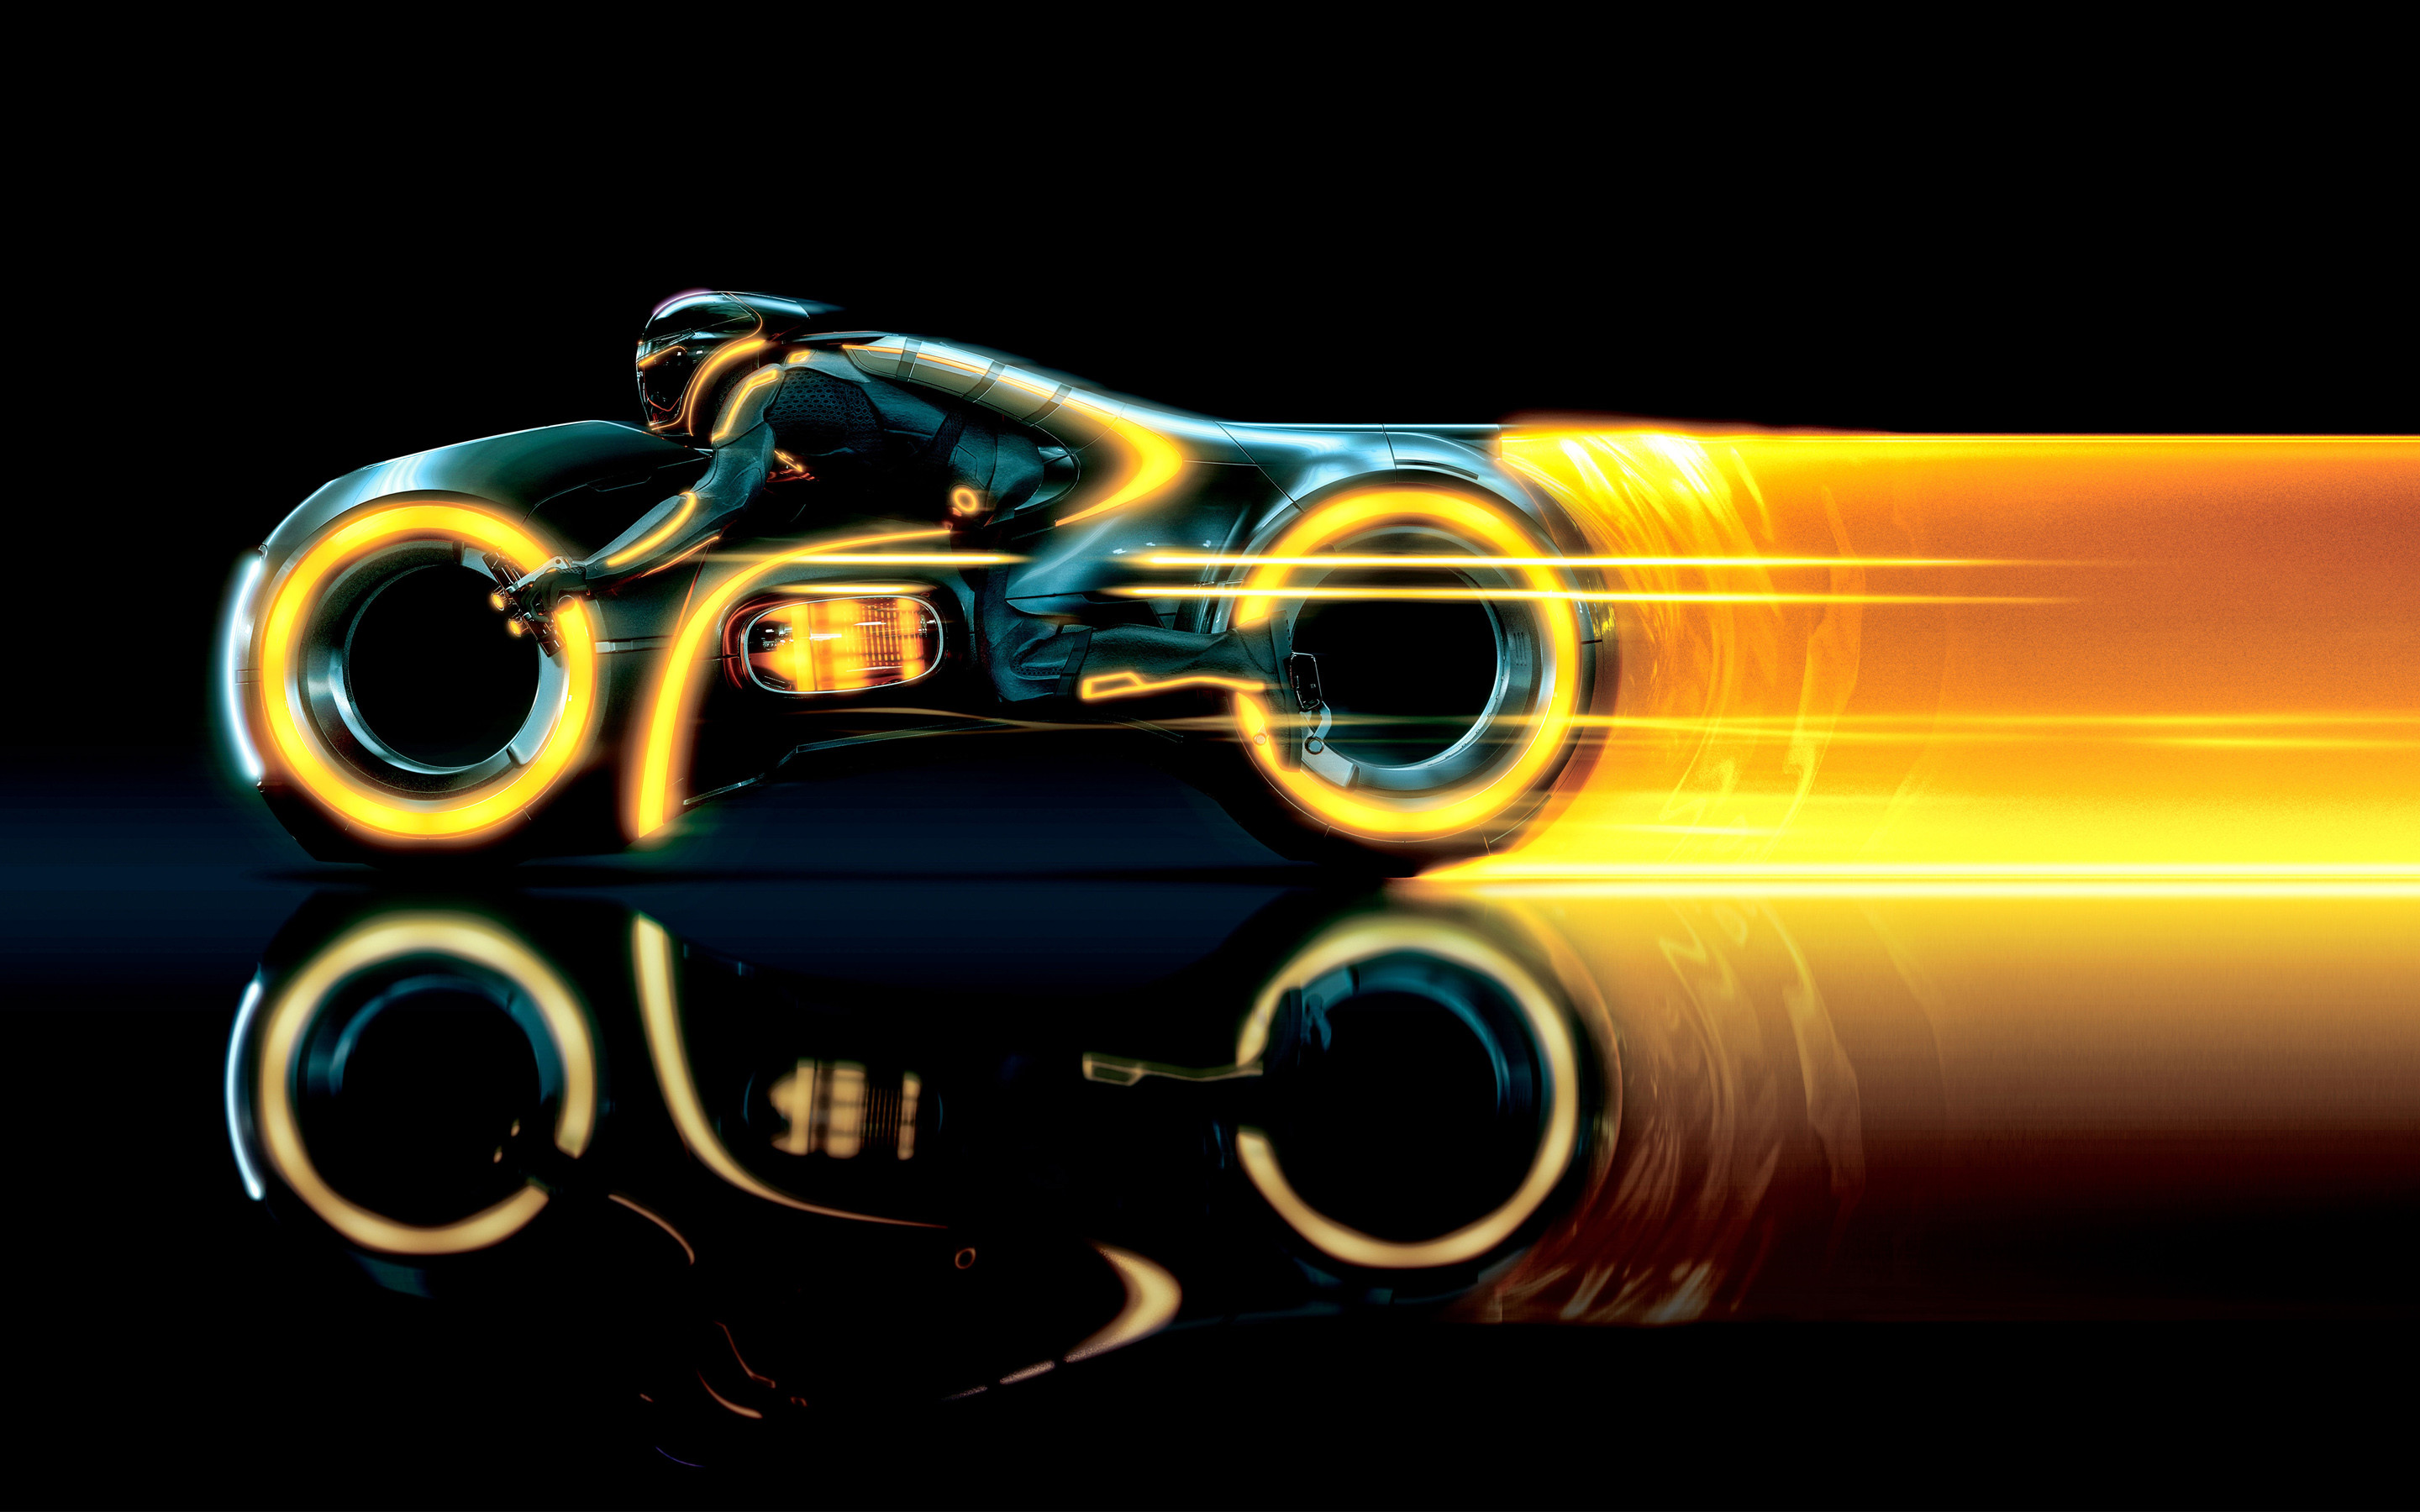 2880x1800 Tron Legacy Lightcycle